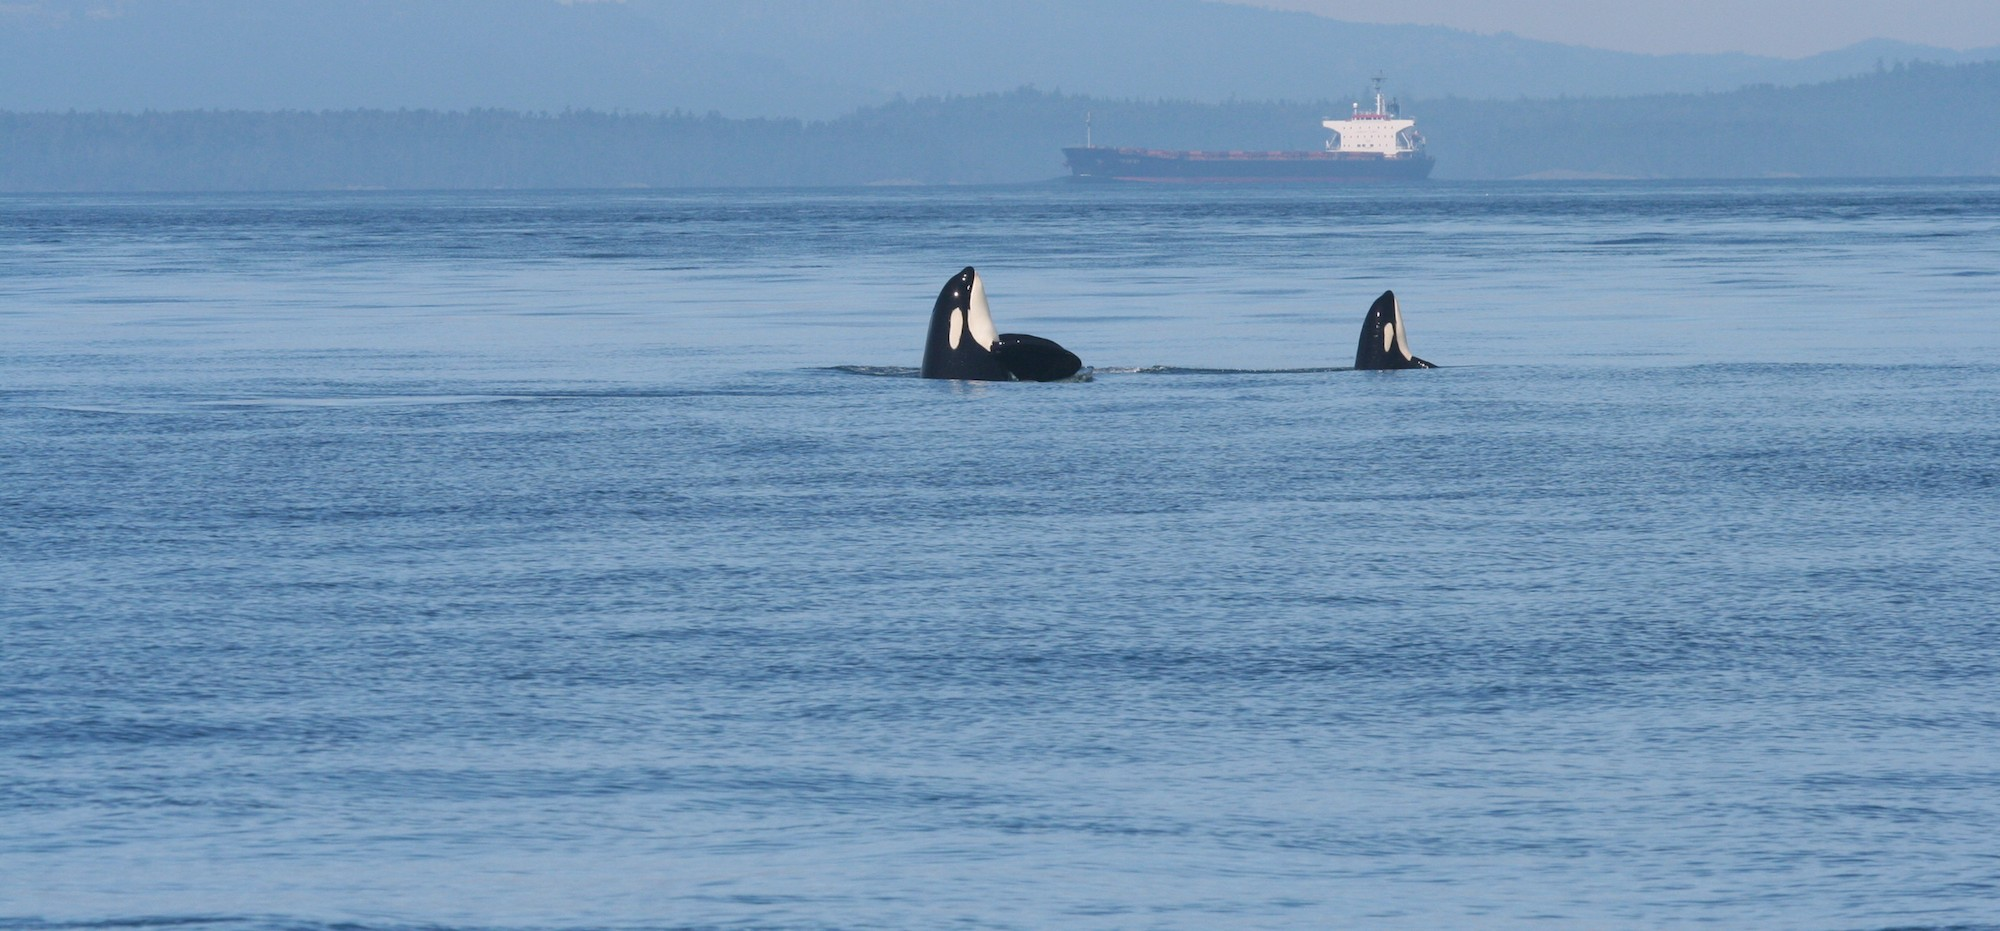 Ship noise extends to frequencies used by endangered killer whales